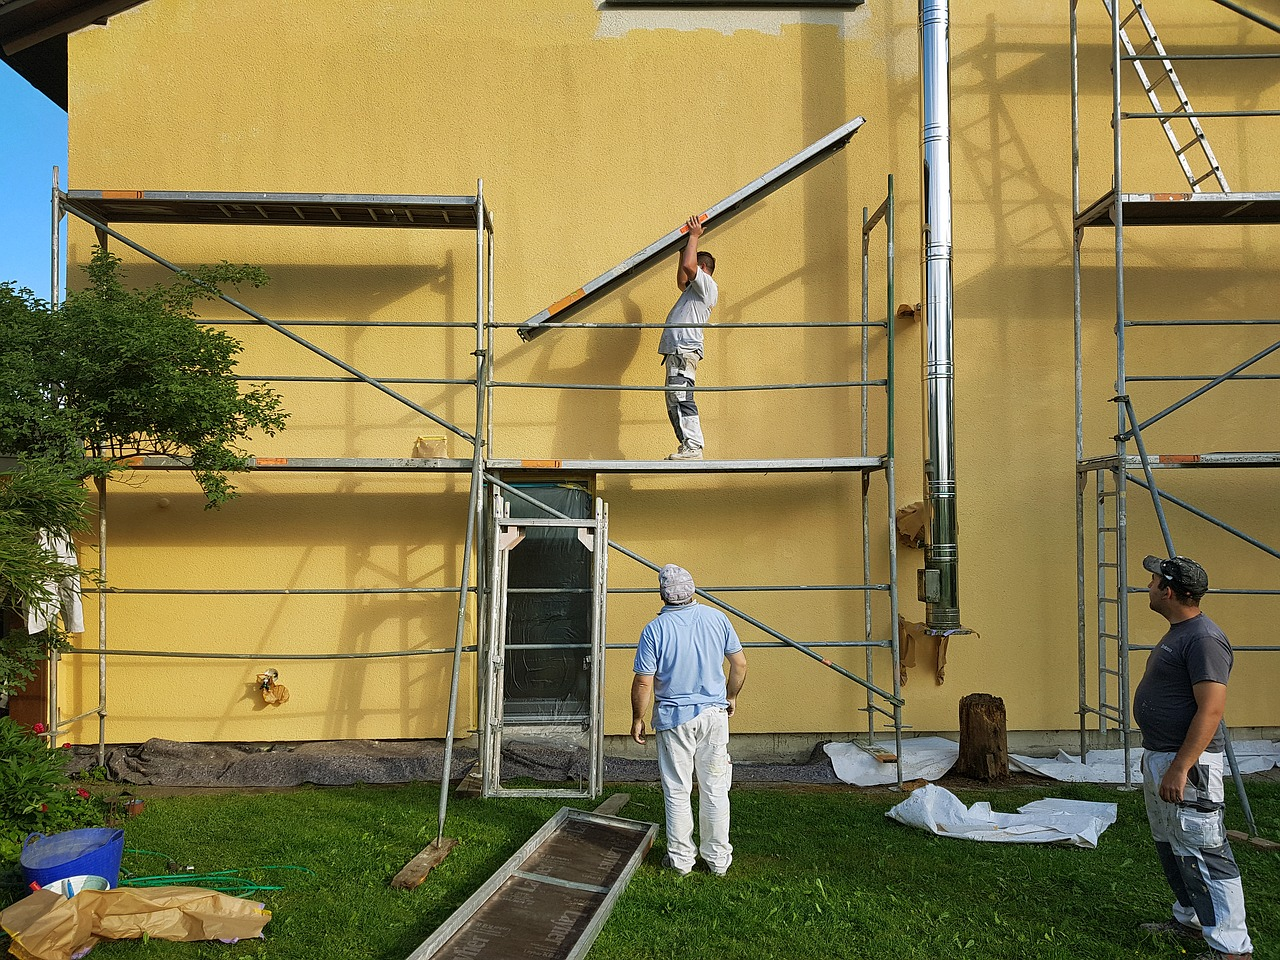 scaffold, build up, painter